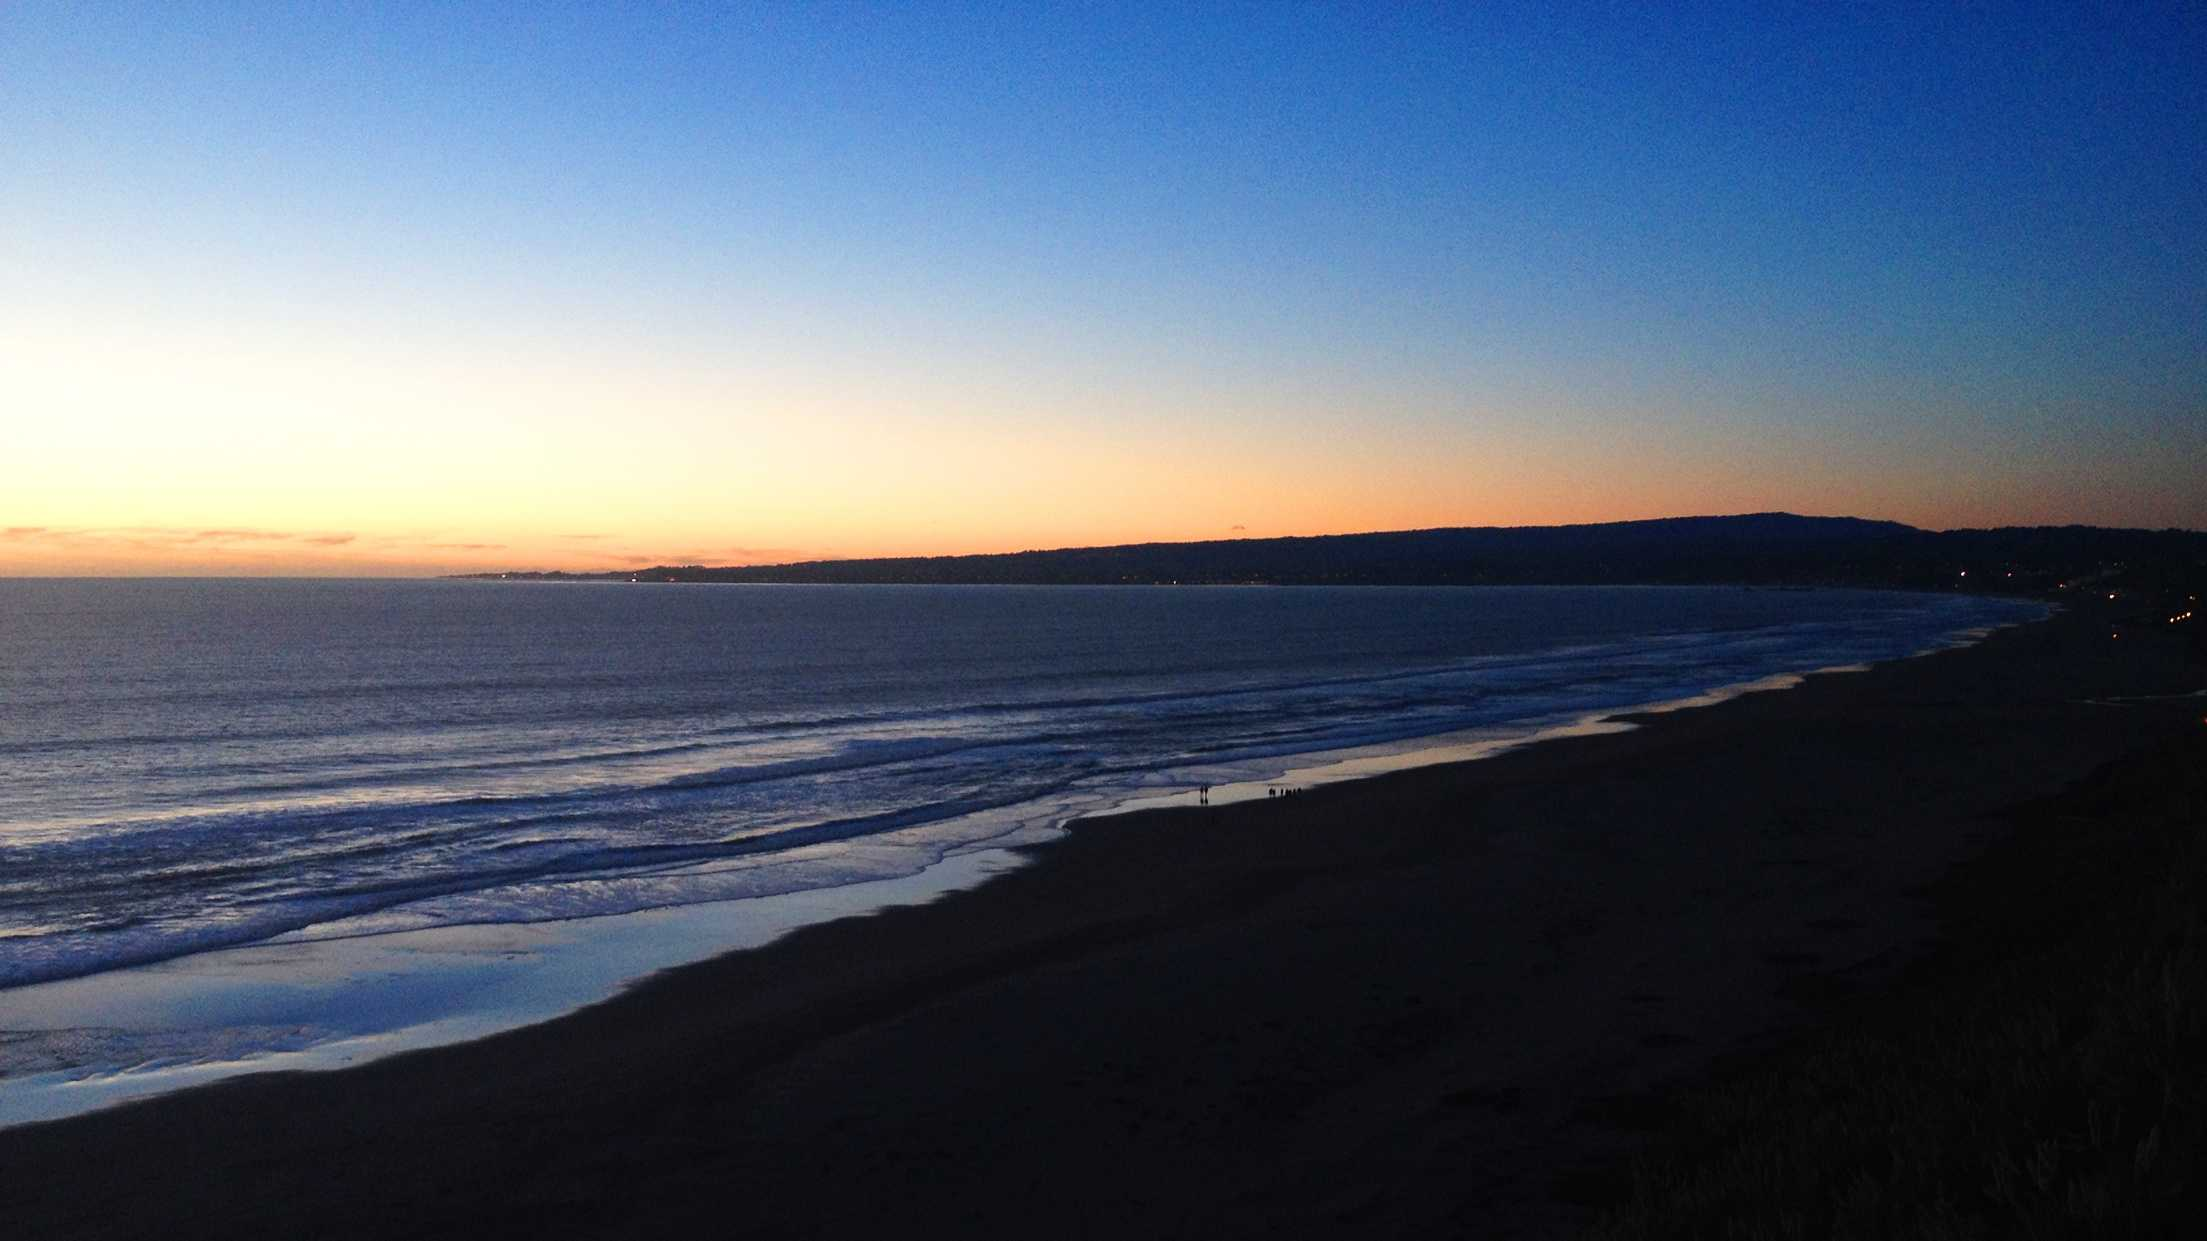 Santa Cruz is seen on the horizon at sunset. Dec. 25, 2014